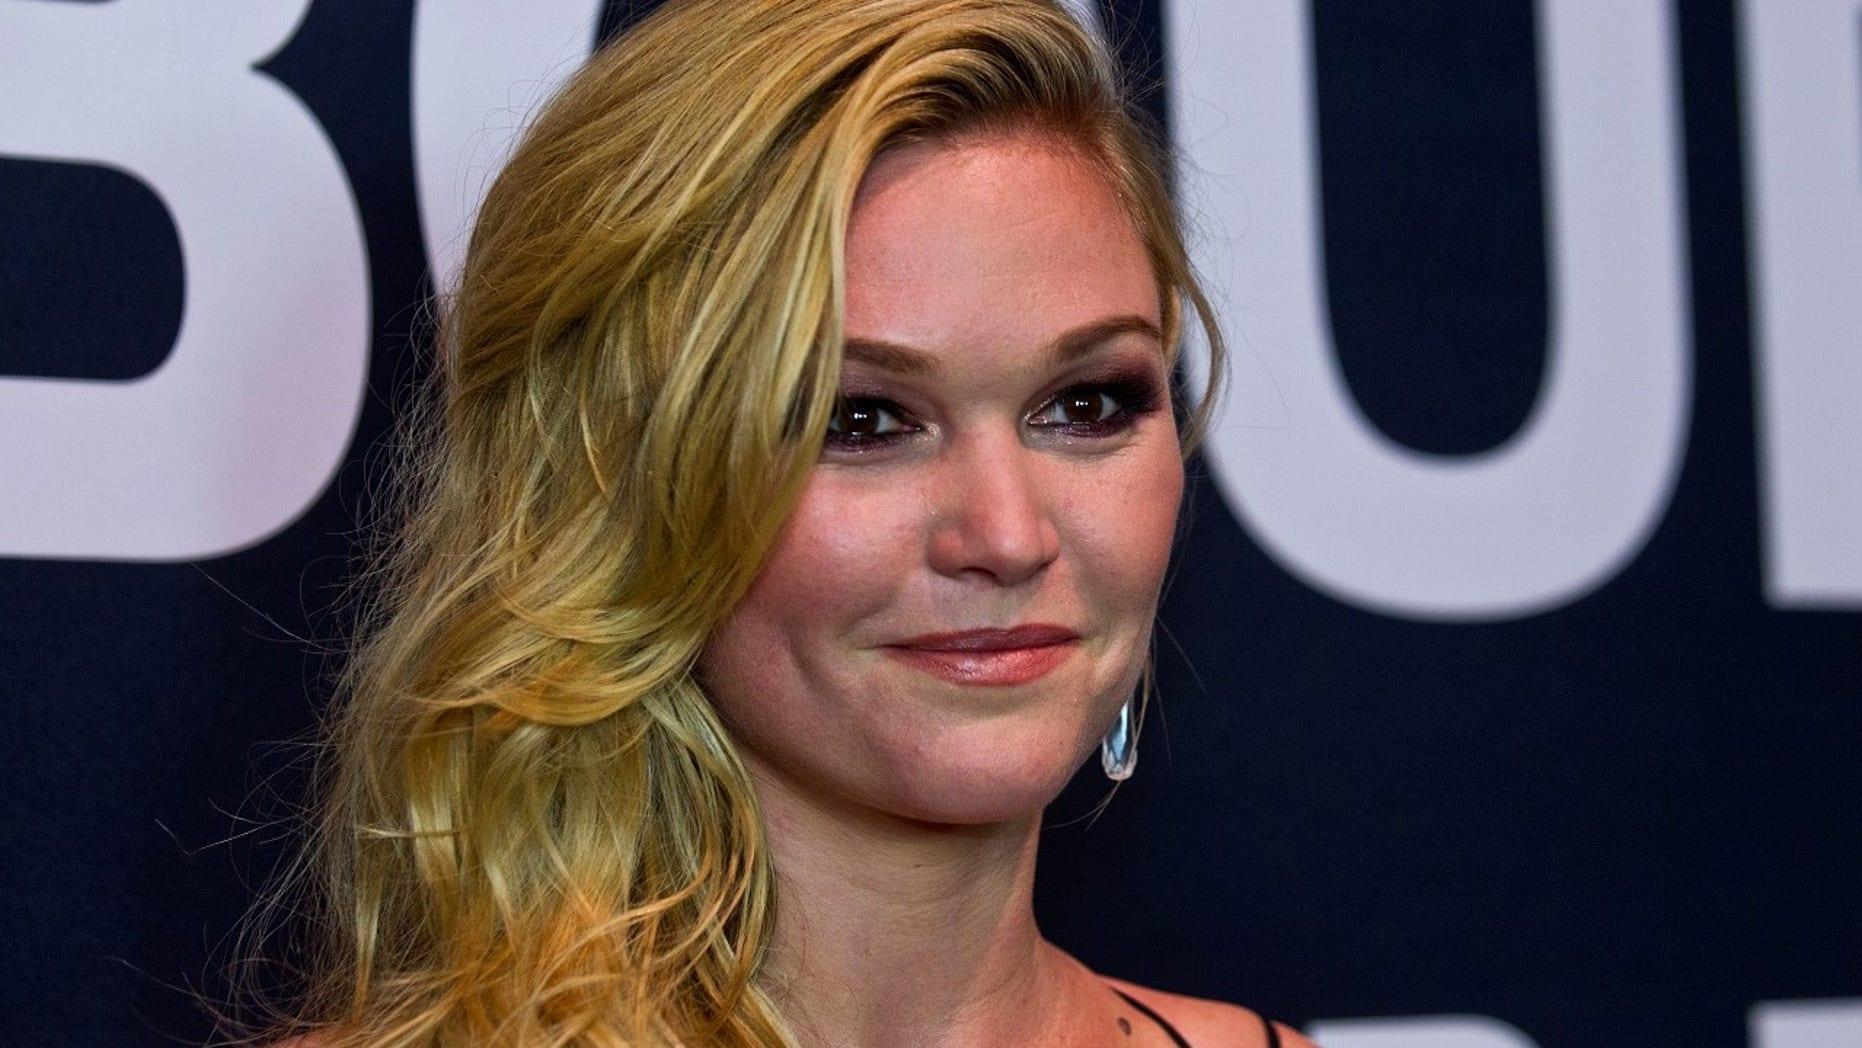 Julia Stiles hit back at mom-shamers who accused her of holding her newborn son incorrectly.